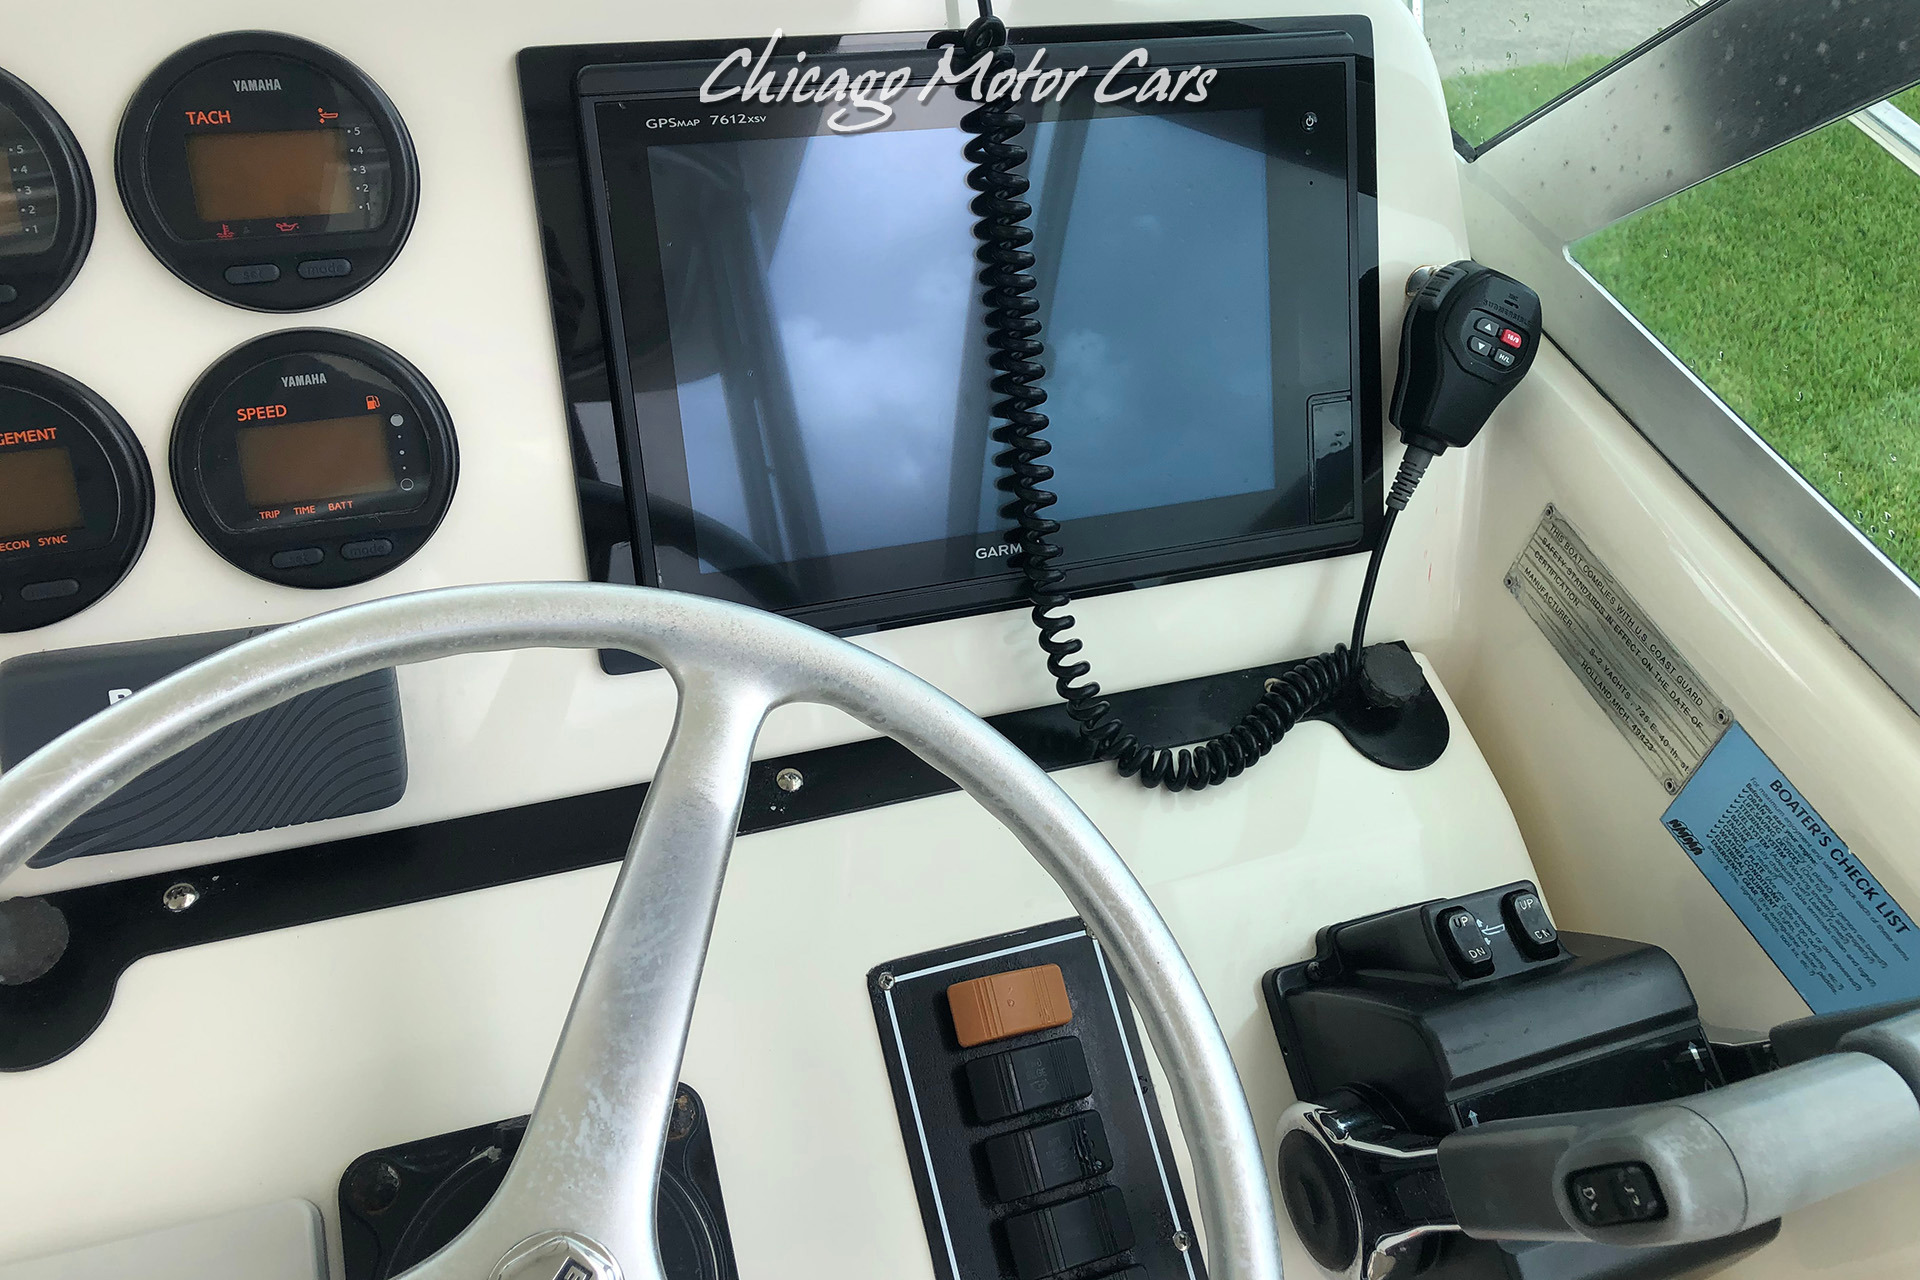 Used 2002 Pursuit 3070 Boat For Sale ($79,800)   Chicago